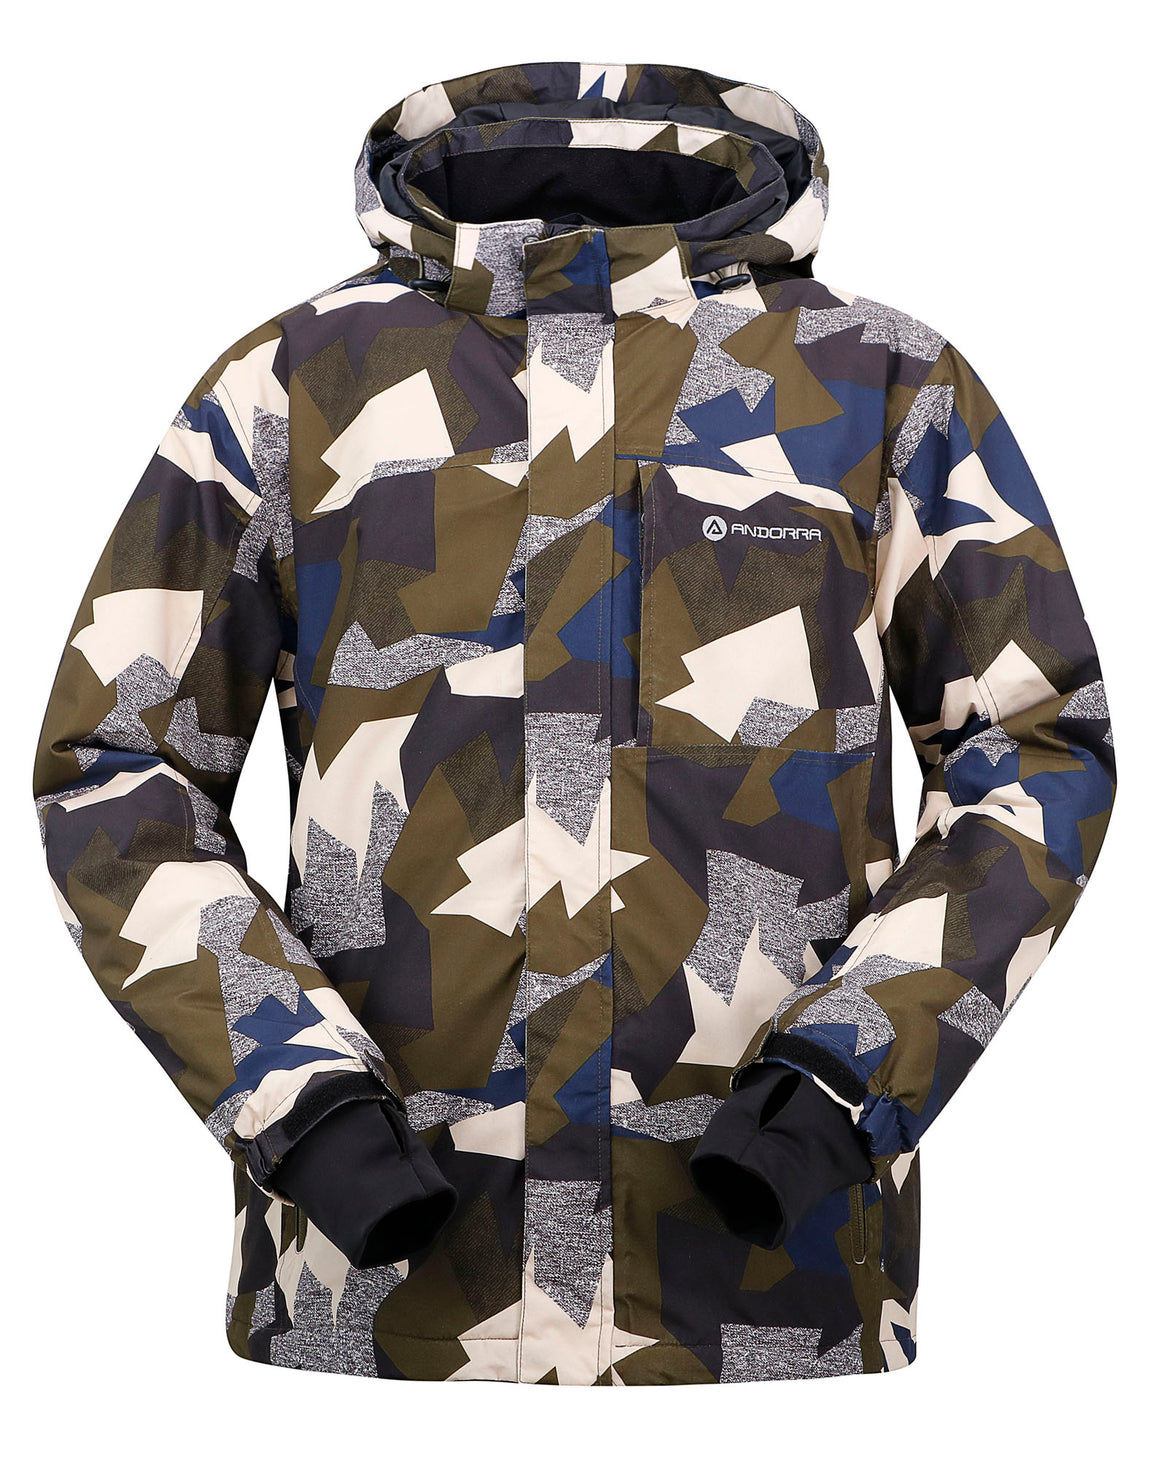 Andorra Men's Performance Insulated Ski Jacket with Zip-Off Hood - Army Grunge